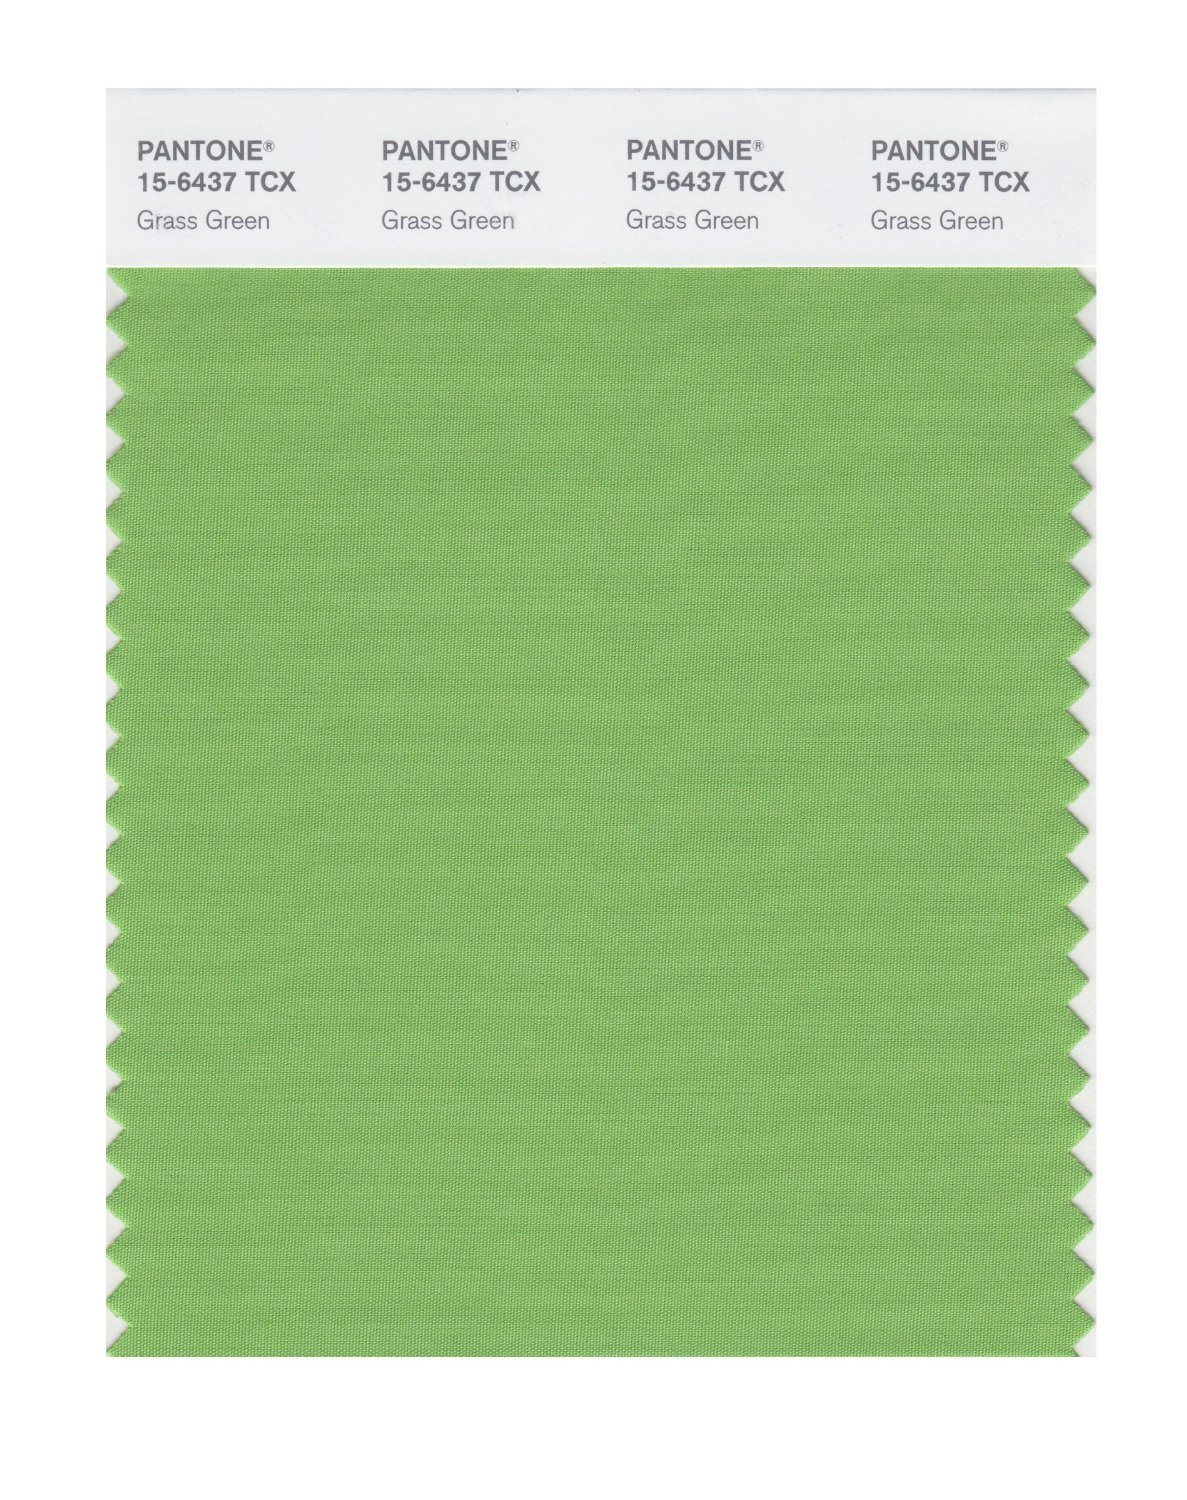 Pantone Smart Swatch 15-6437 Grass Green